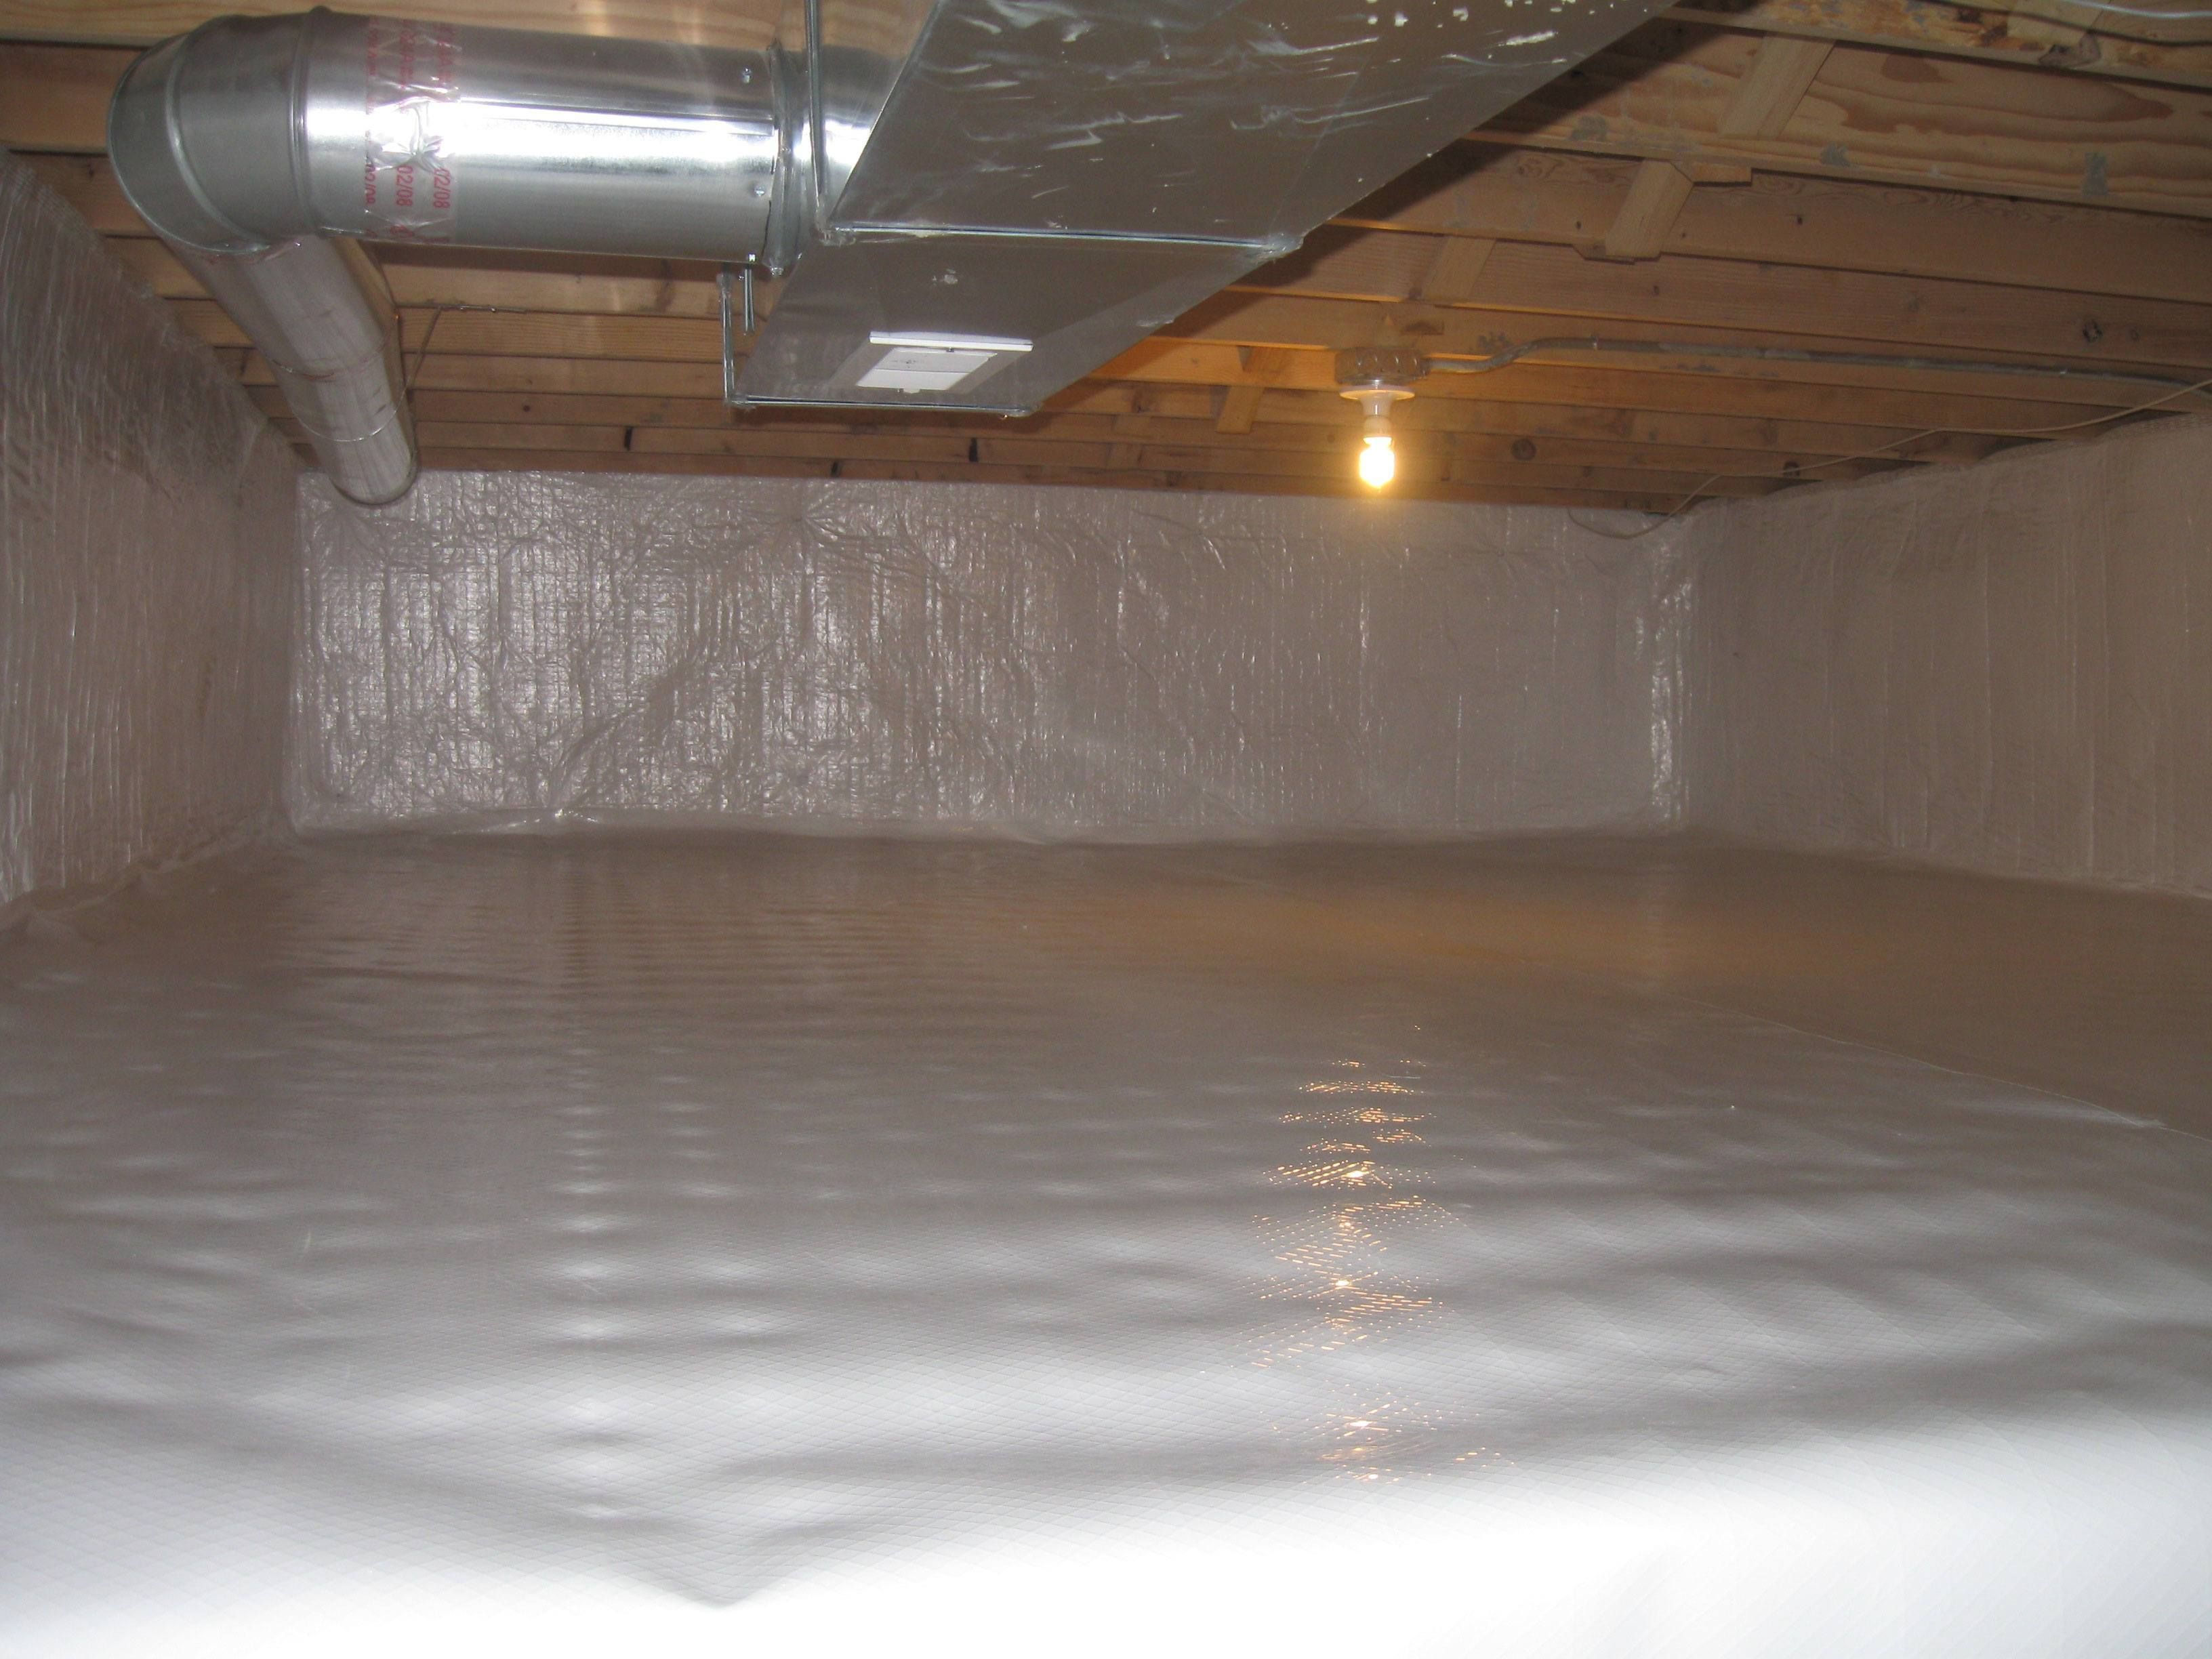 Best 25 Crawl space encapsulation ideas on Pinterest